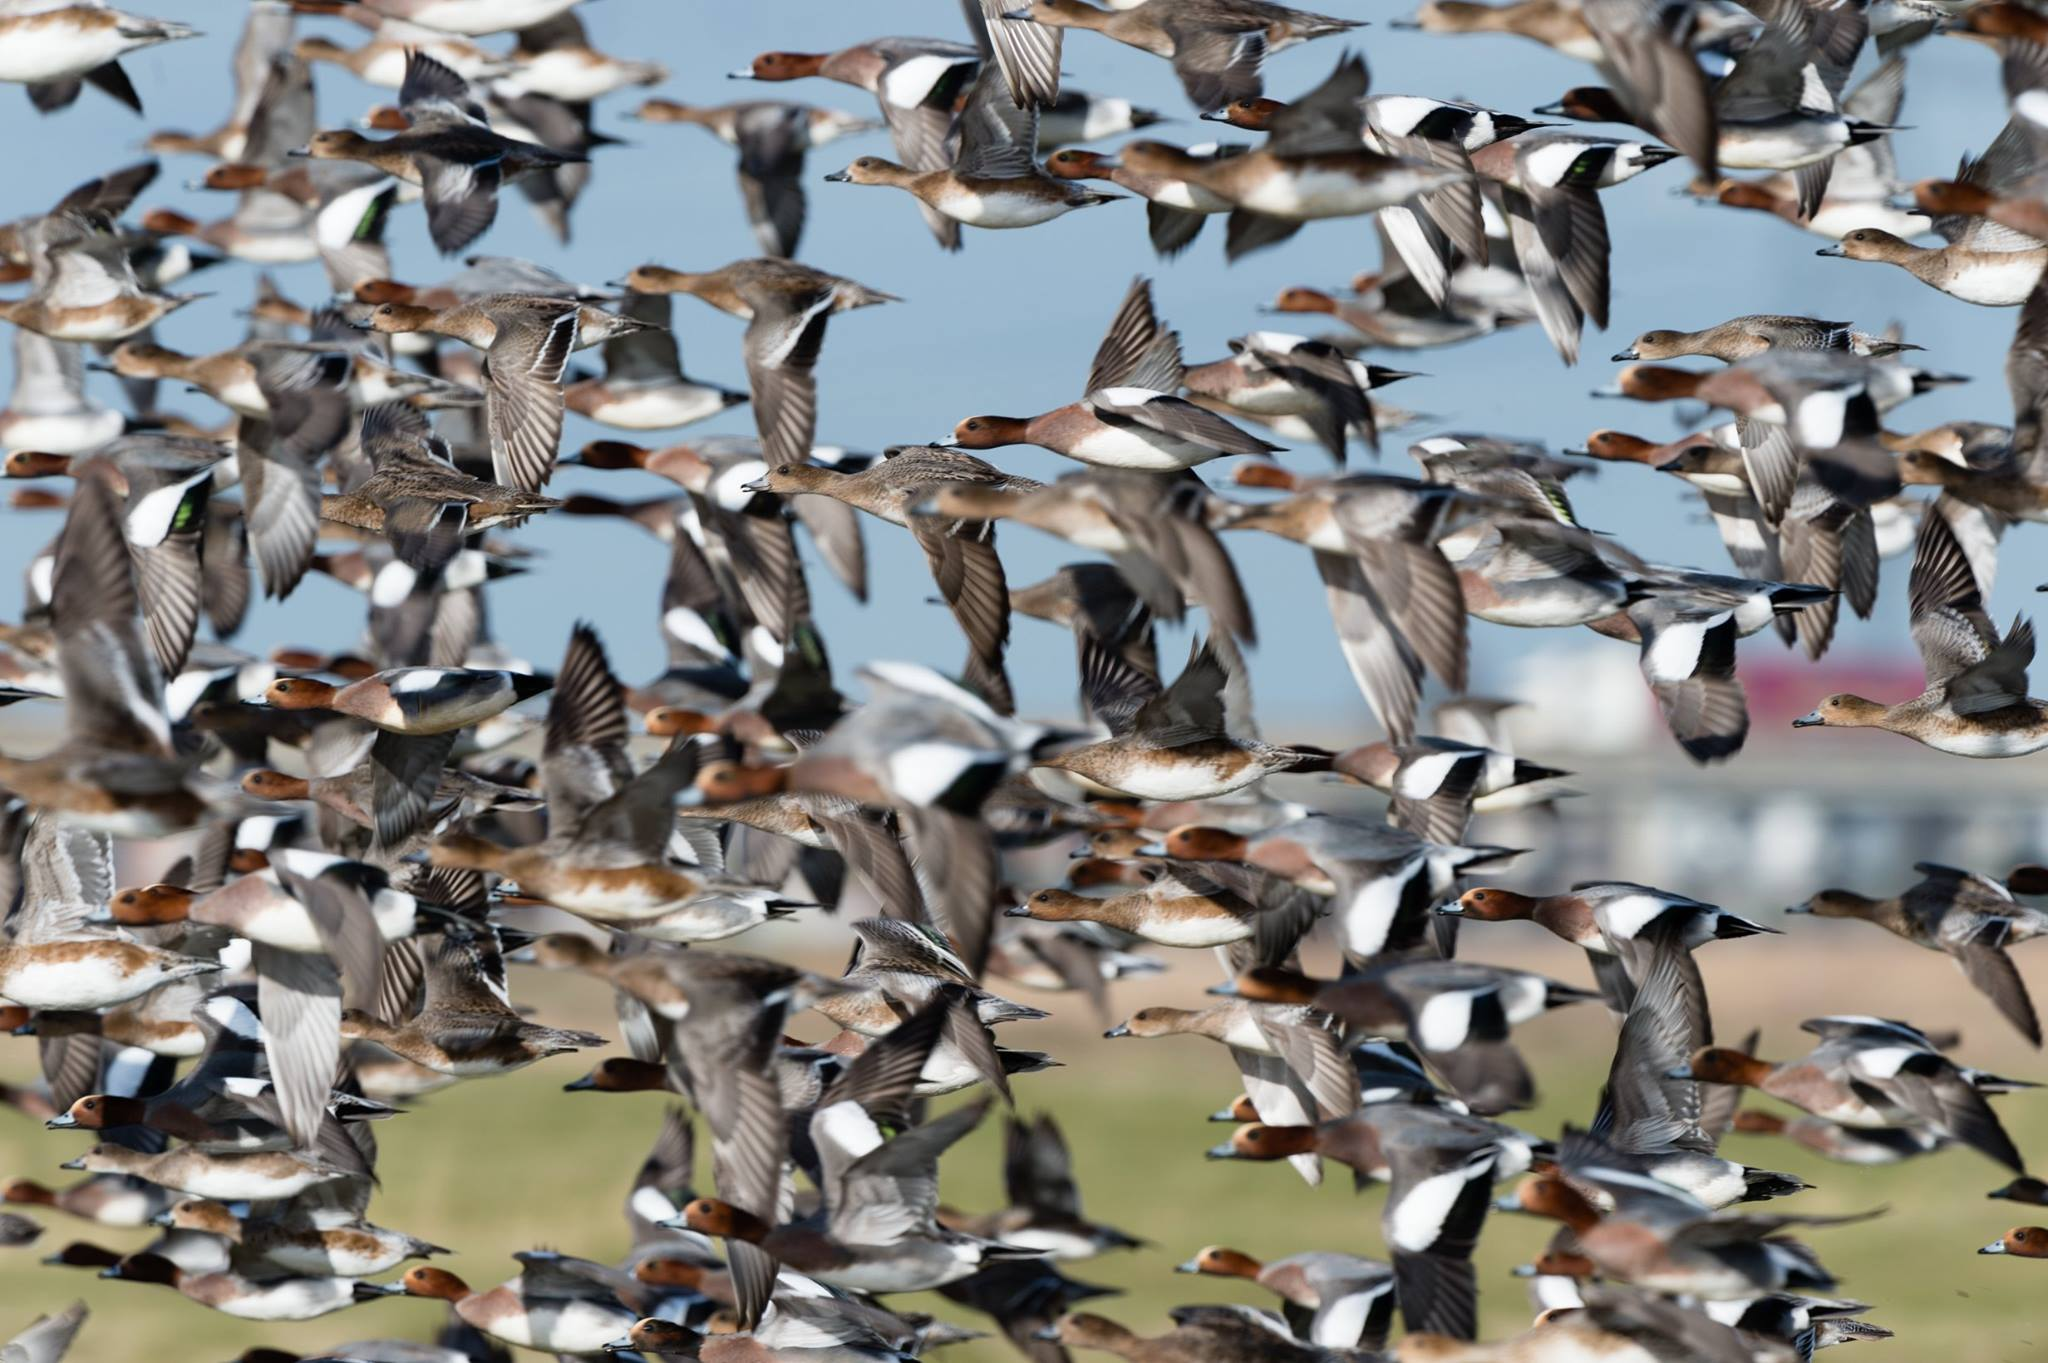 Winterwatch: Wonderful Waders and Wildfowl... A drop in workshop